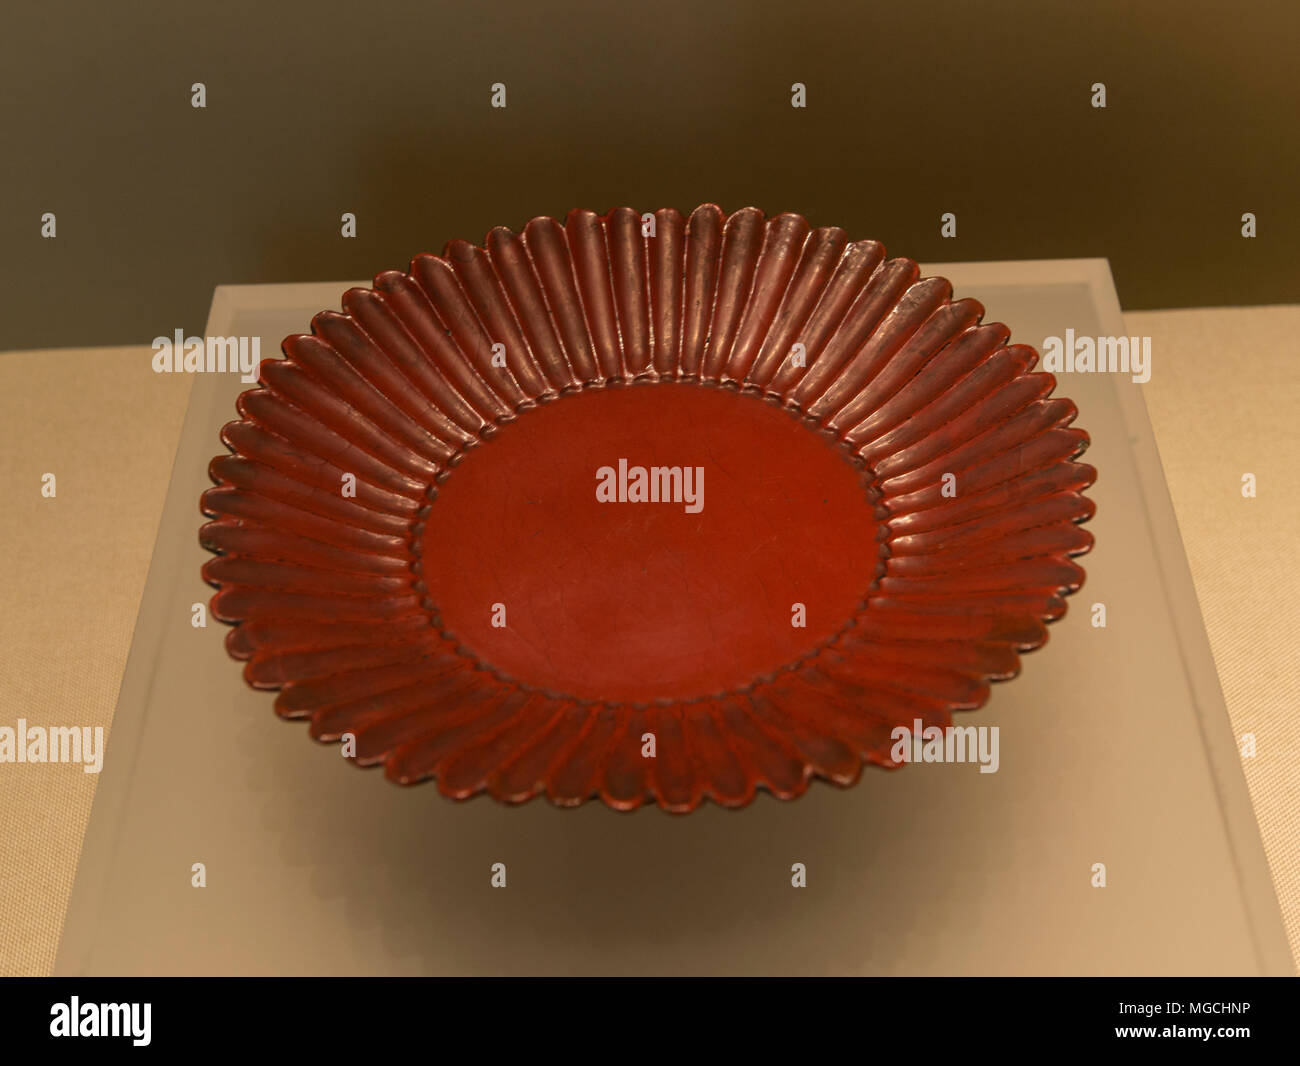 A scarlet lacquer chrysanthemum petals style plate from Yuan Dynasty(1279–1368), donated by entrepreneurial couple Cao Qiyong and Luo Bizhen to Zhejiang Museum, China. - Stock Image